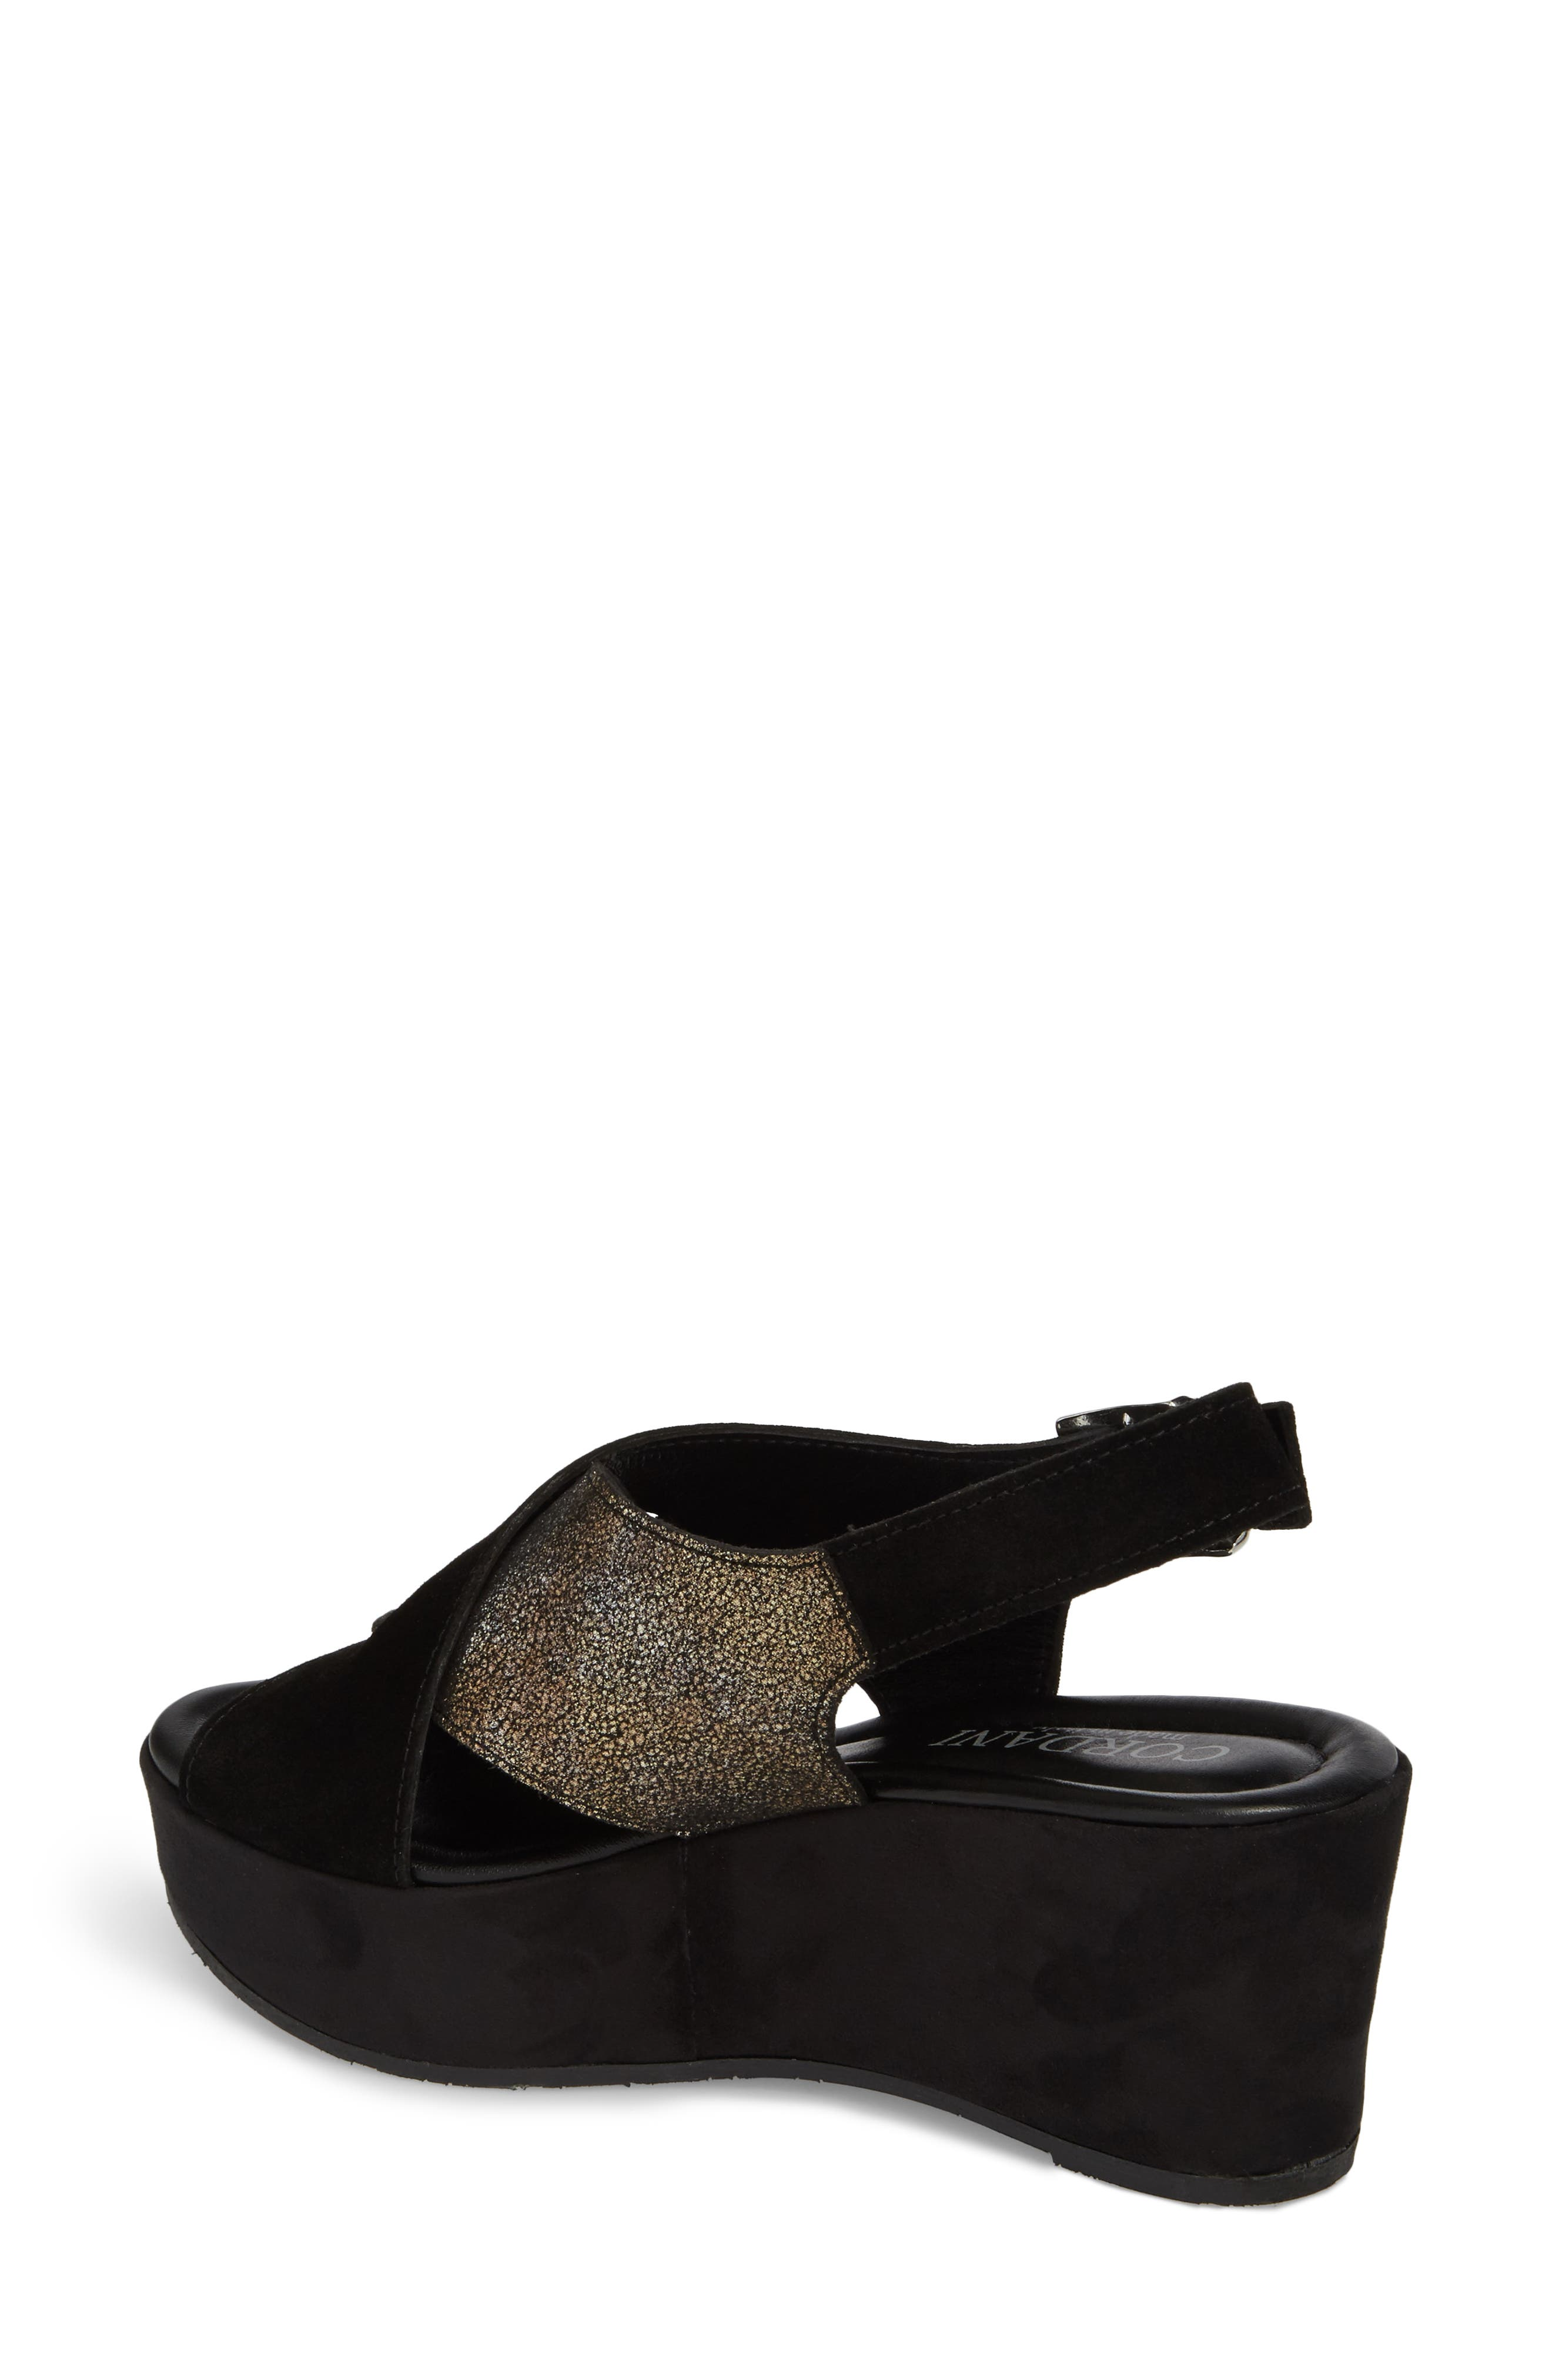 Cleary Wedge Sandal,                             Alternate thumbnail 2, color,                             BLACK/ PEWTER SUEDE